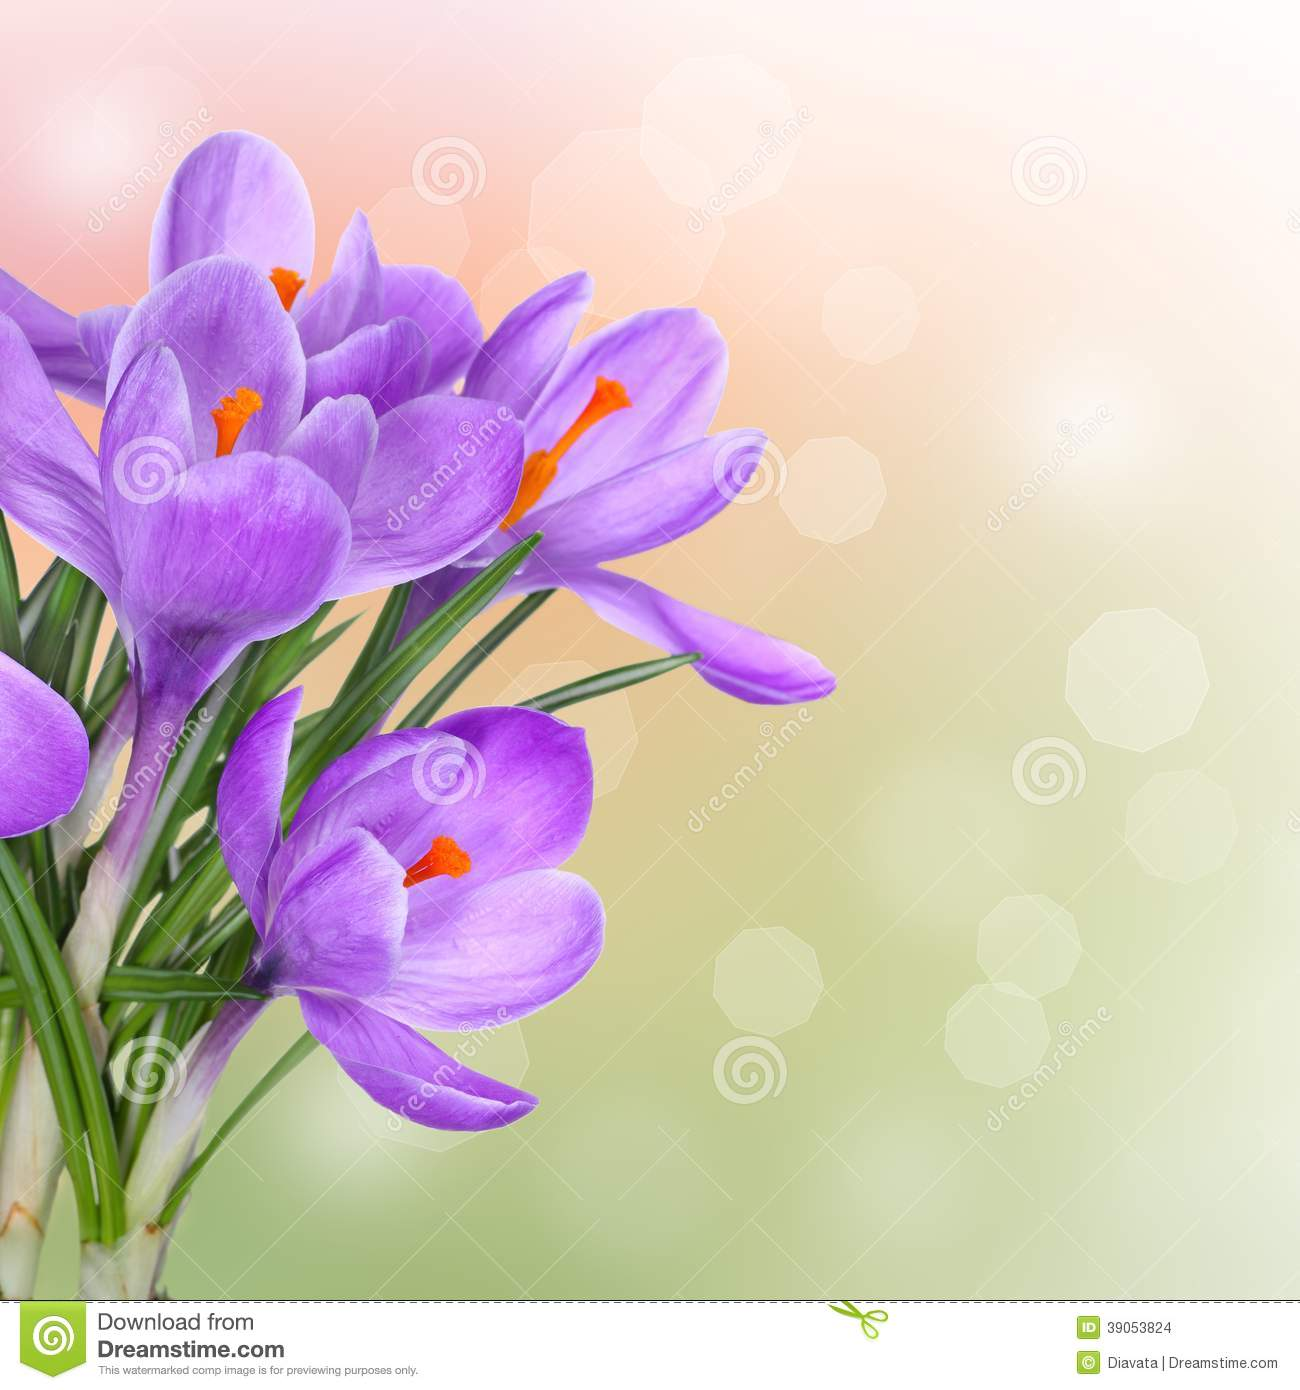 Spring background with purple crocus flowers